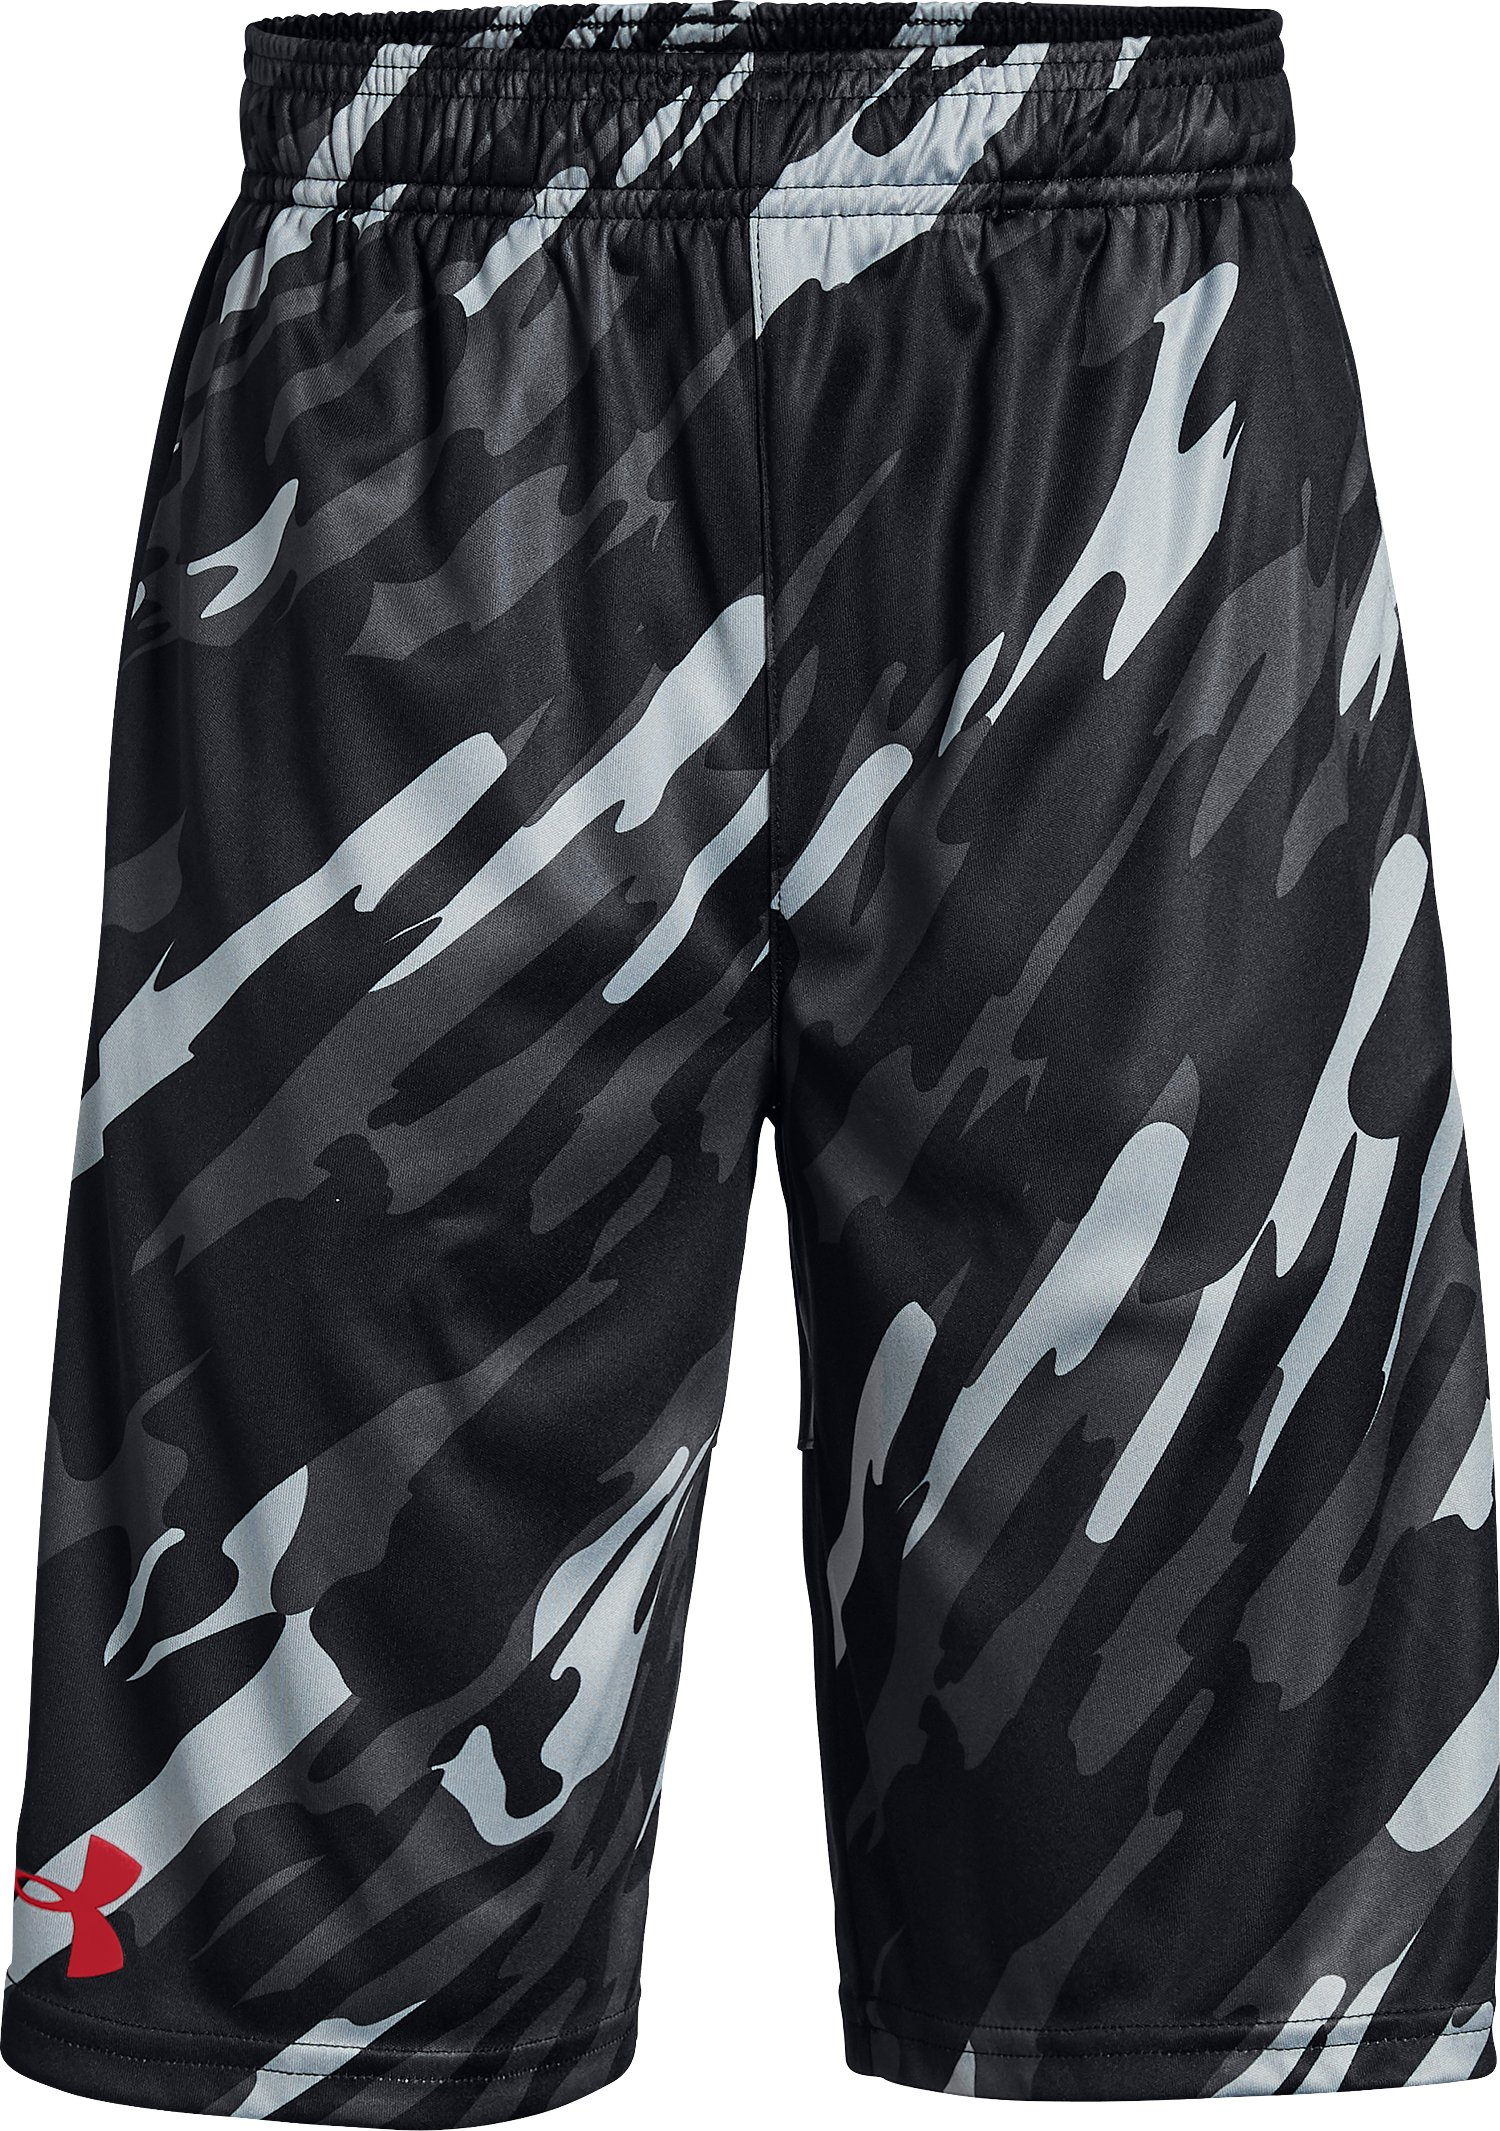 Boys' UA Stunt Printed Shorts, Black